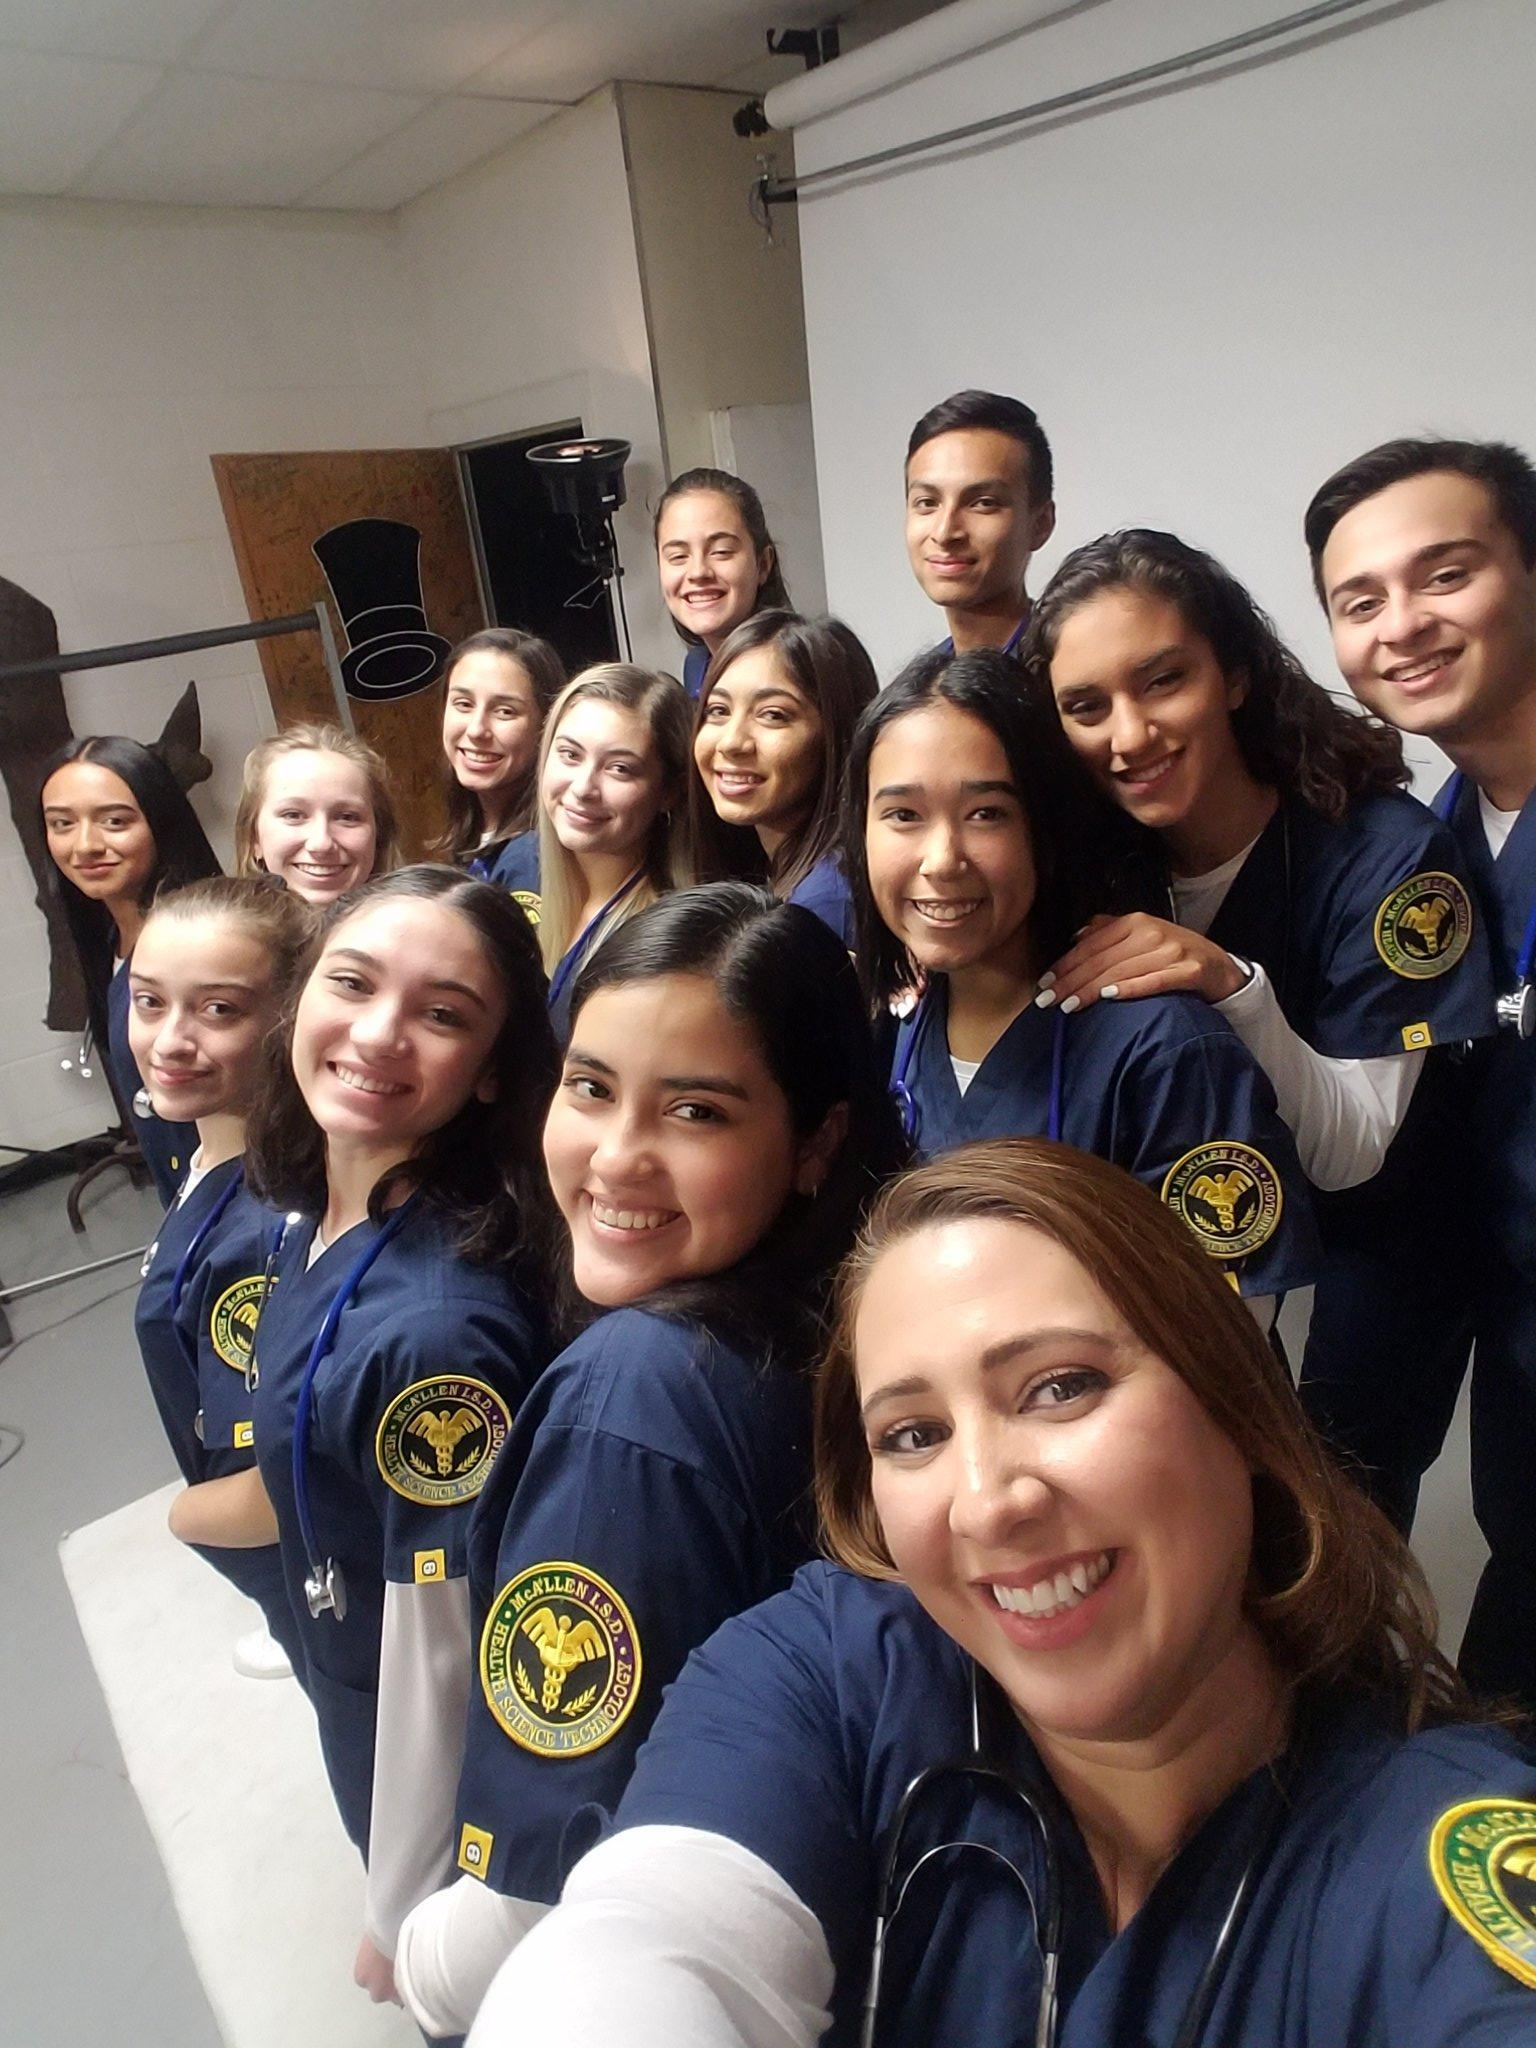 students in medical scrubs posing for picture